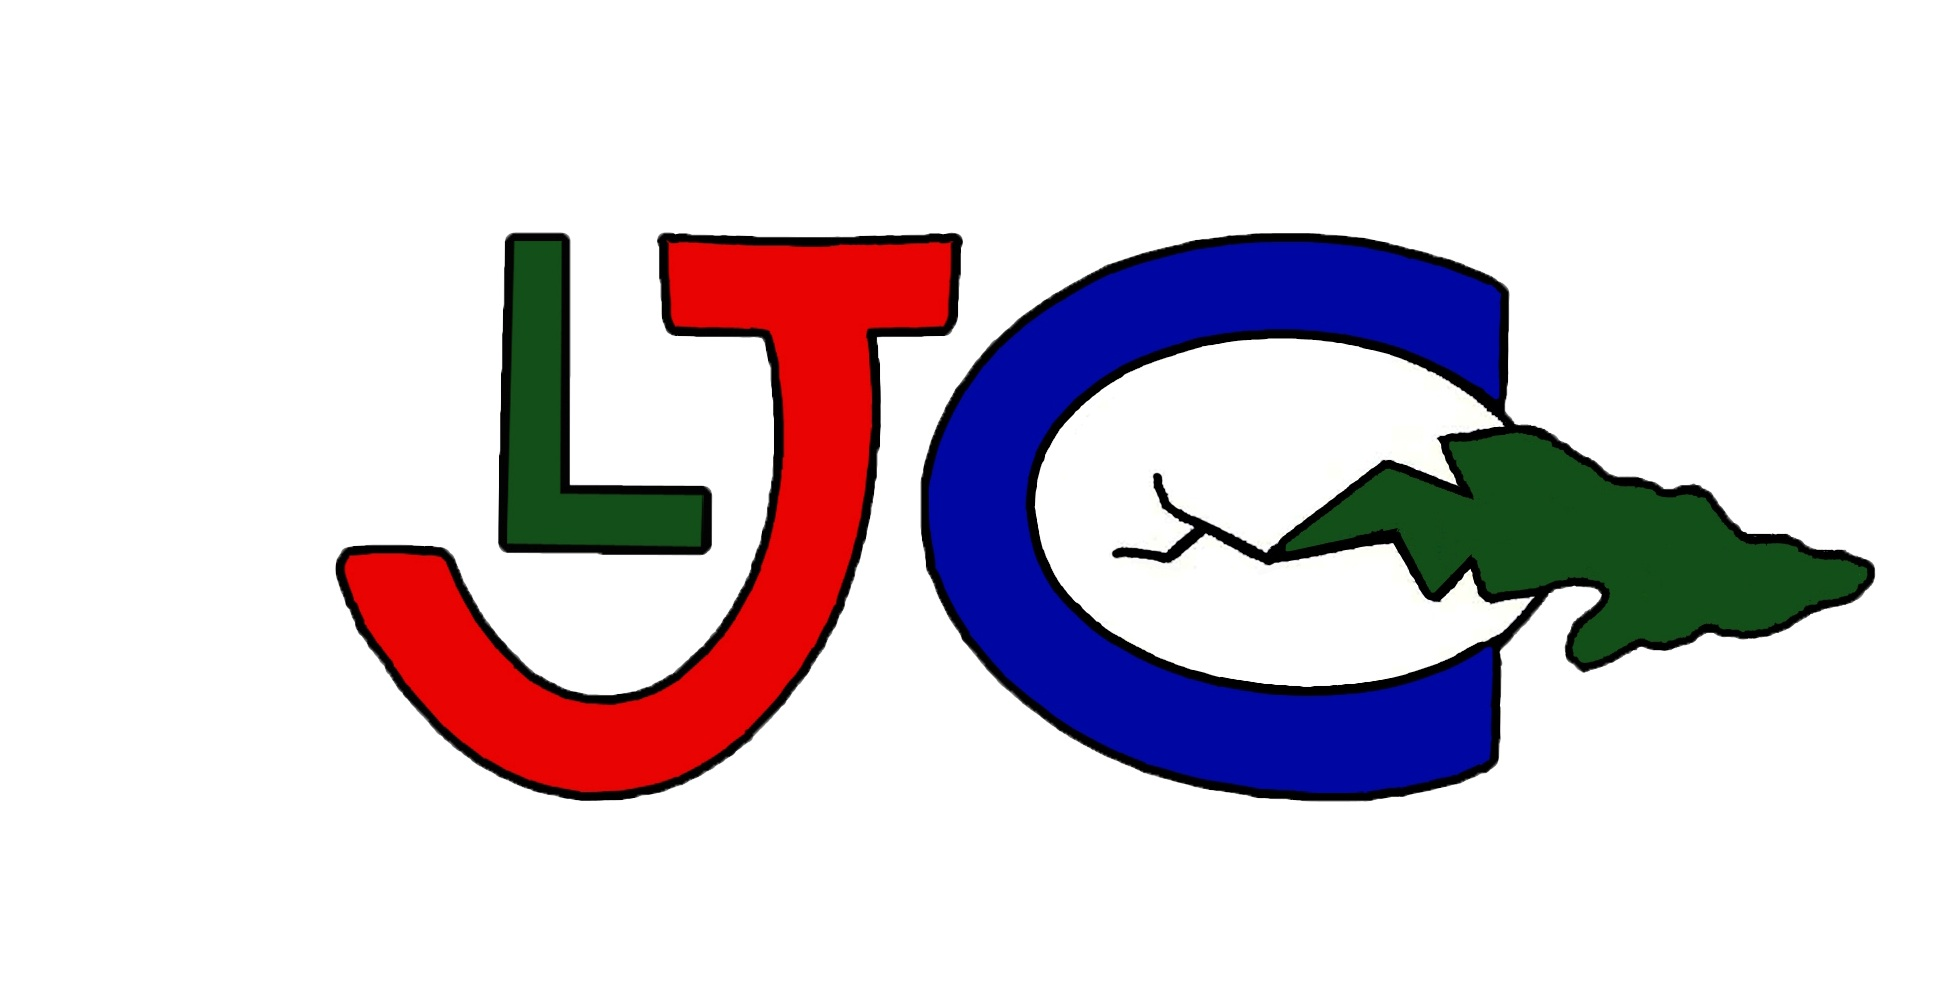 Logo original de LJC, diseñado por el Héroe de la República de Cuba Gerardo Hernández Nordelo desde una cárcel norteamericana.